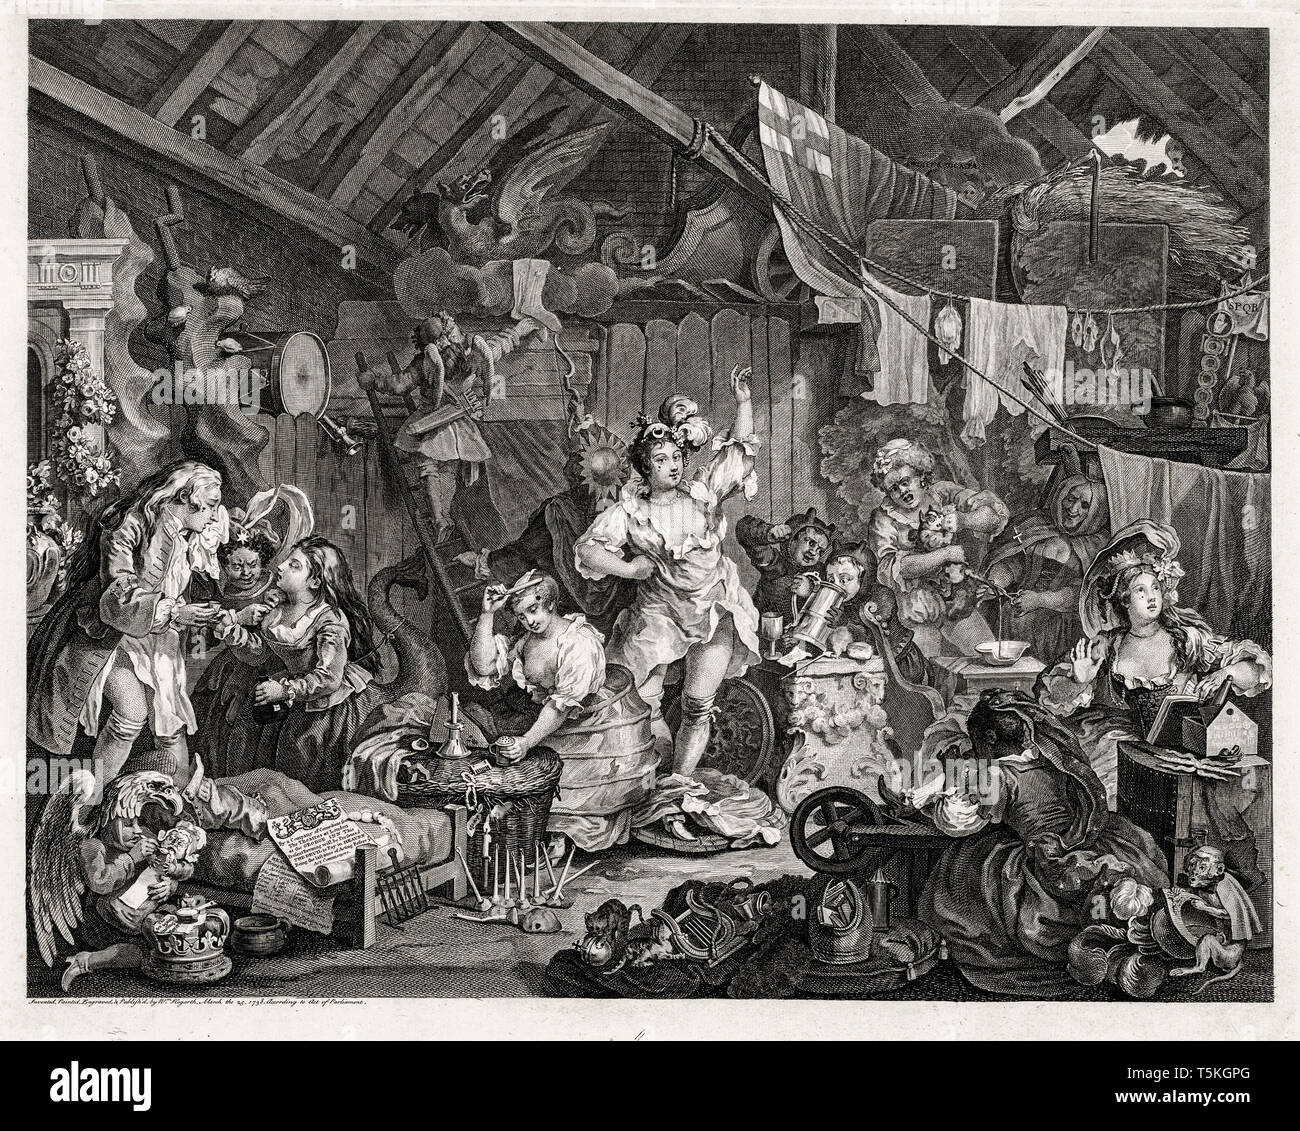 William Hogarth, Strolling Actresses Dressing in a Barn, engraving, 1738 Stock Photo